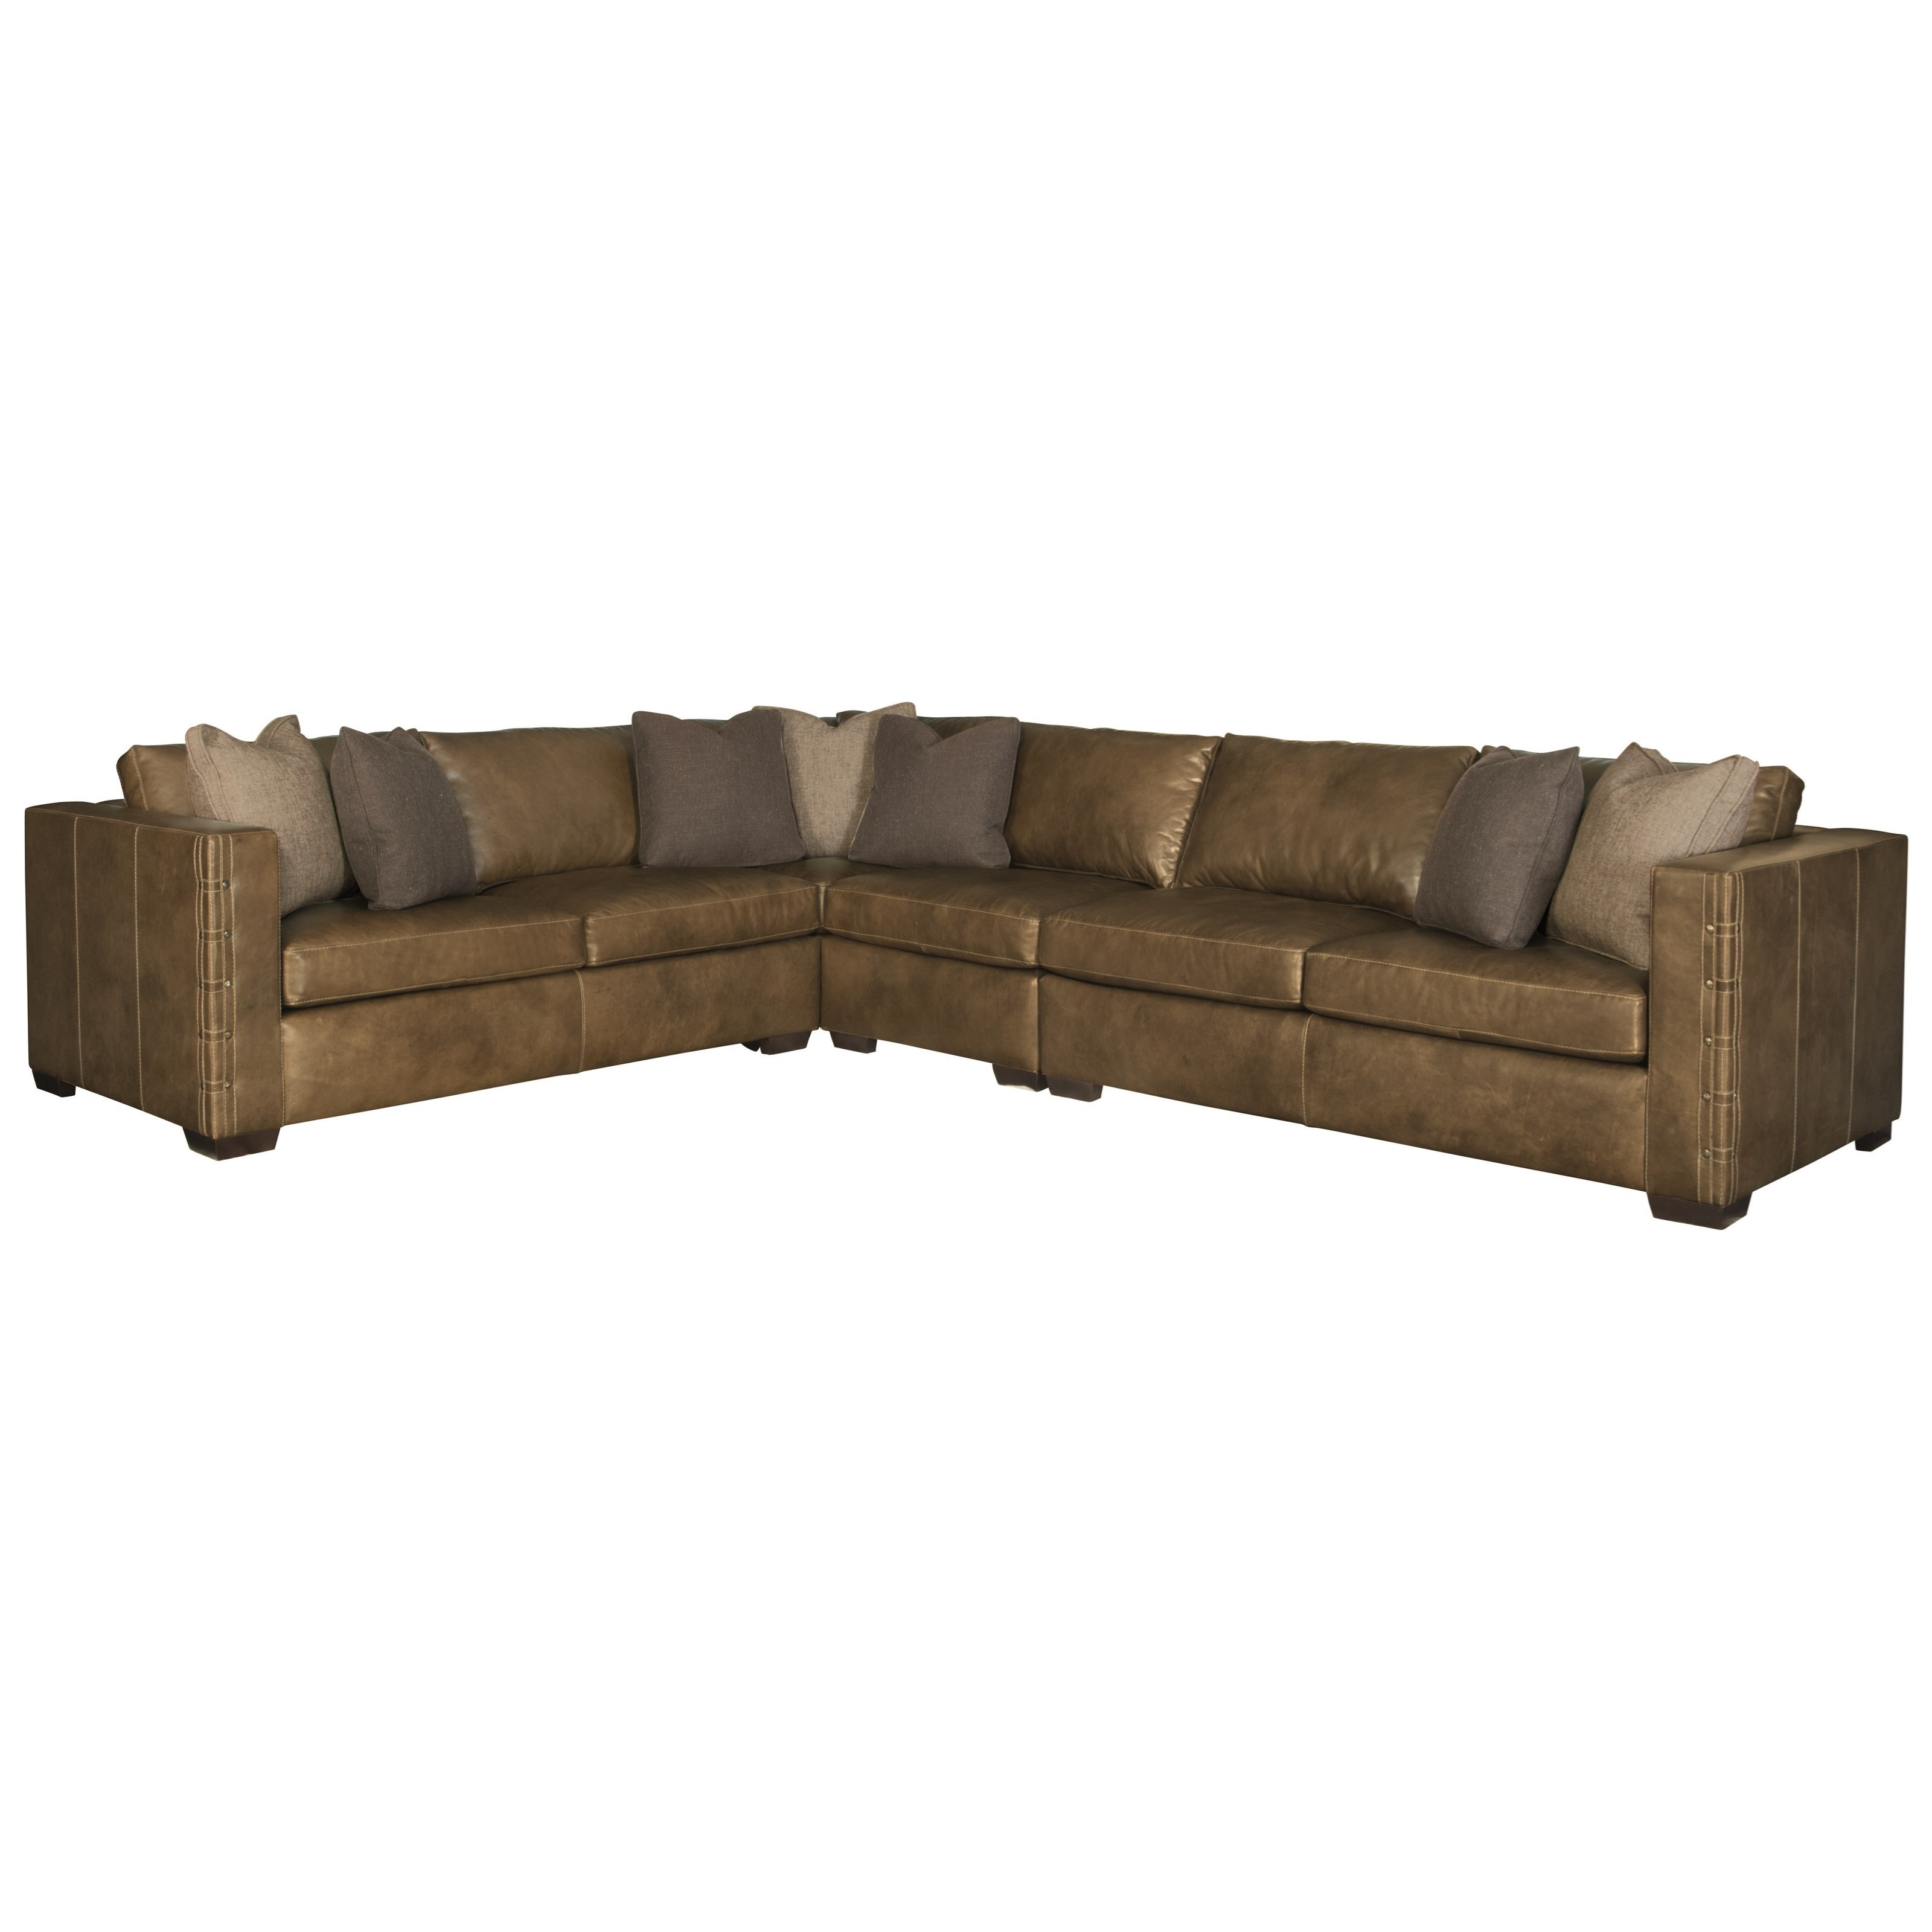 Bernhardt Galloway Sectional Sofa - Item Number: 2342L+32L+30L+41L